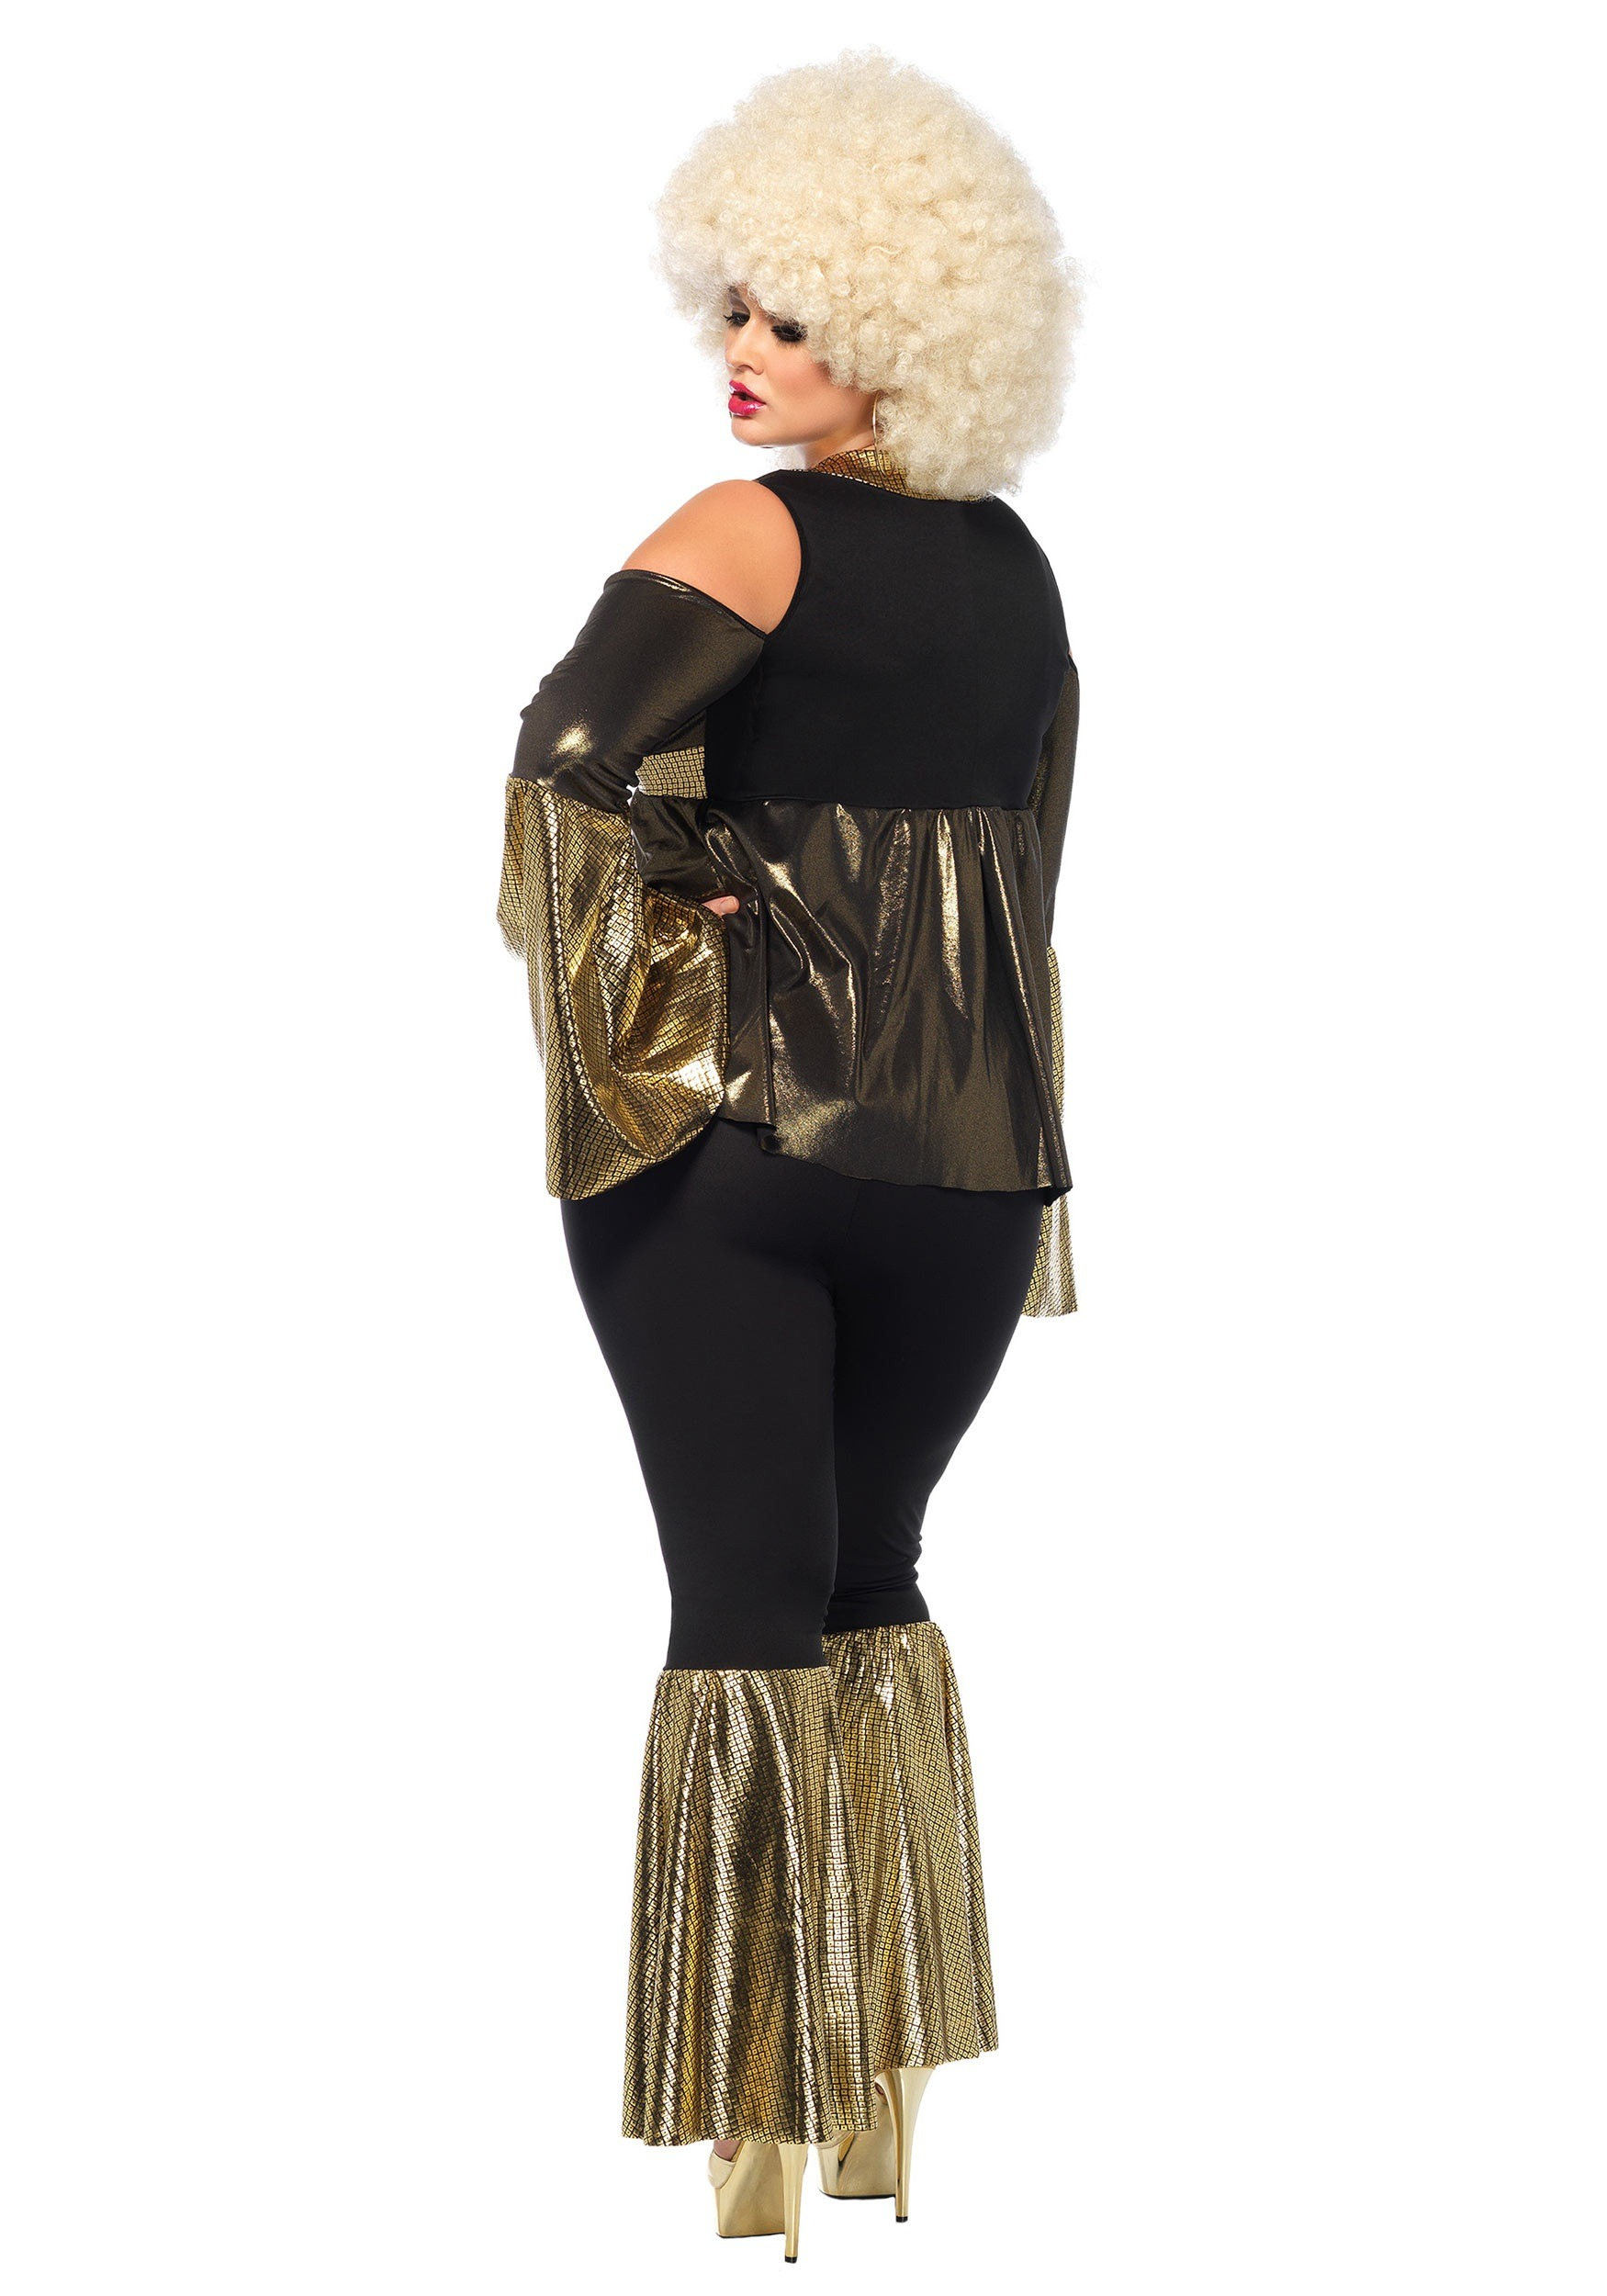 plus size disco a costume .  sc 1 st  Best formats and cover letters for your business - npand.co & plus size 70s outfits - Koto.npand.co